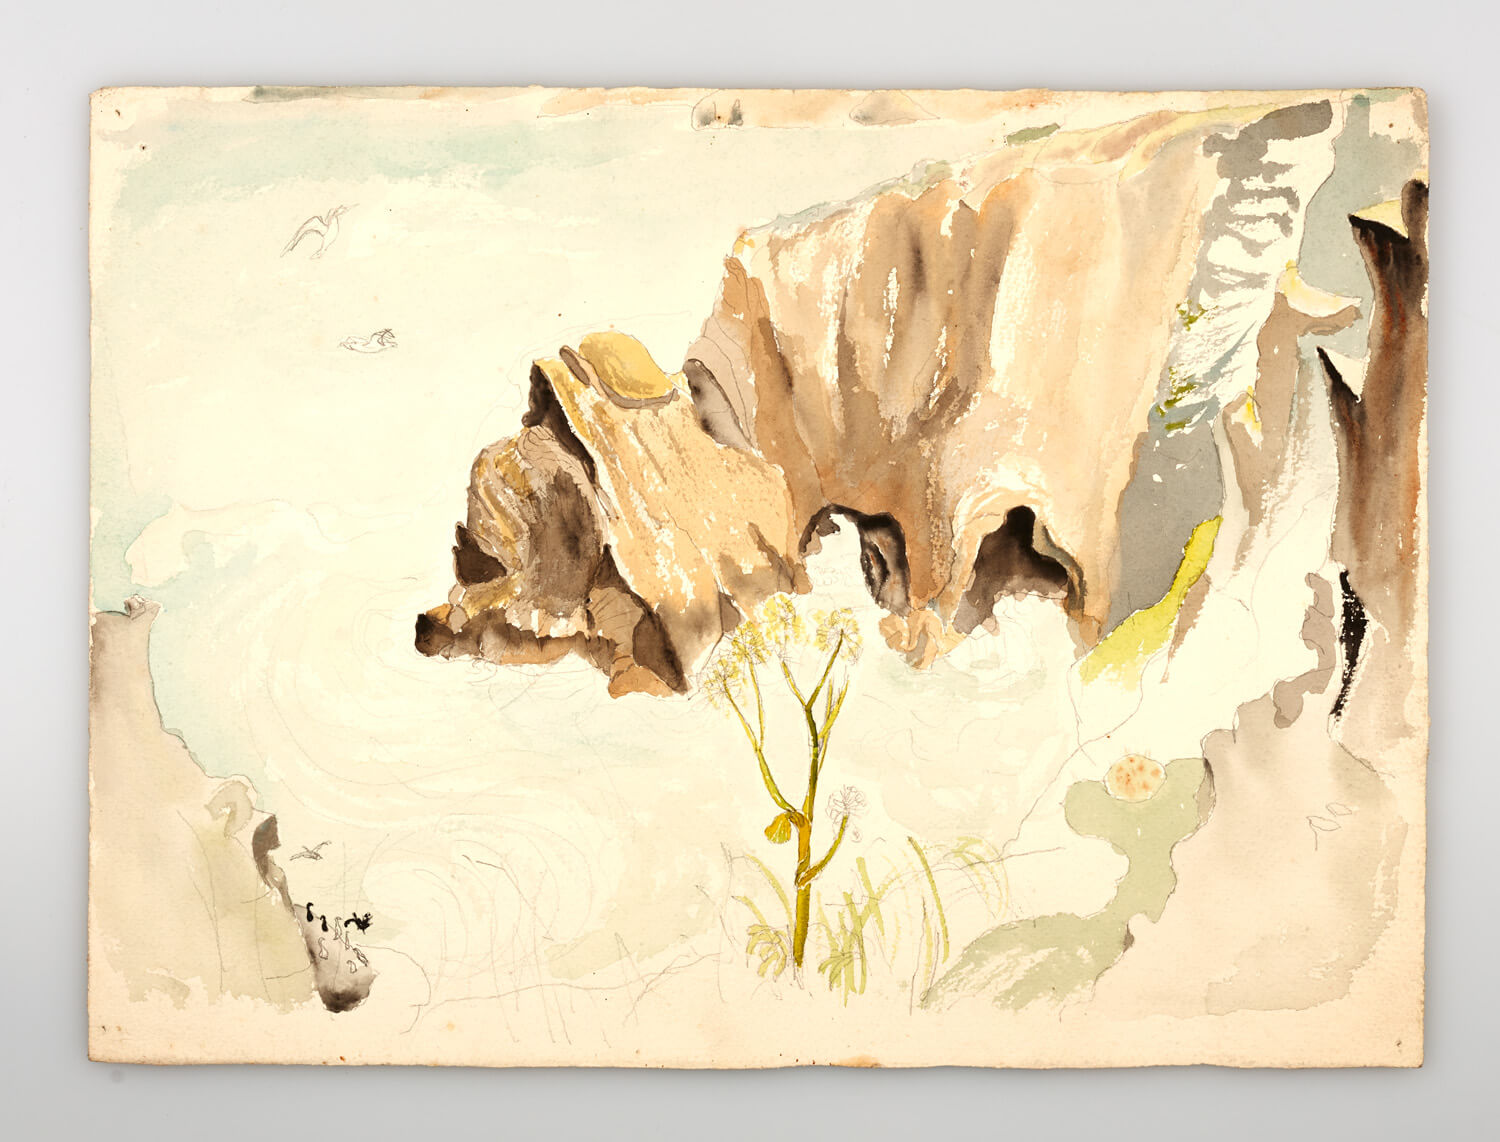 JB260 - Rock and sea, Cornwall sketch - 1946 - 28.5 x 39 cm - Watercolour